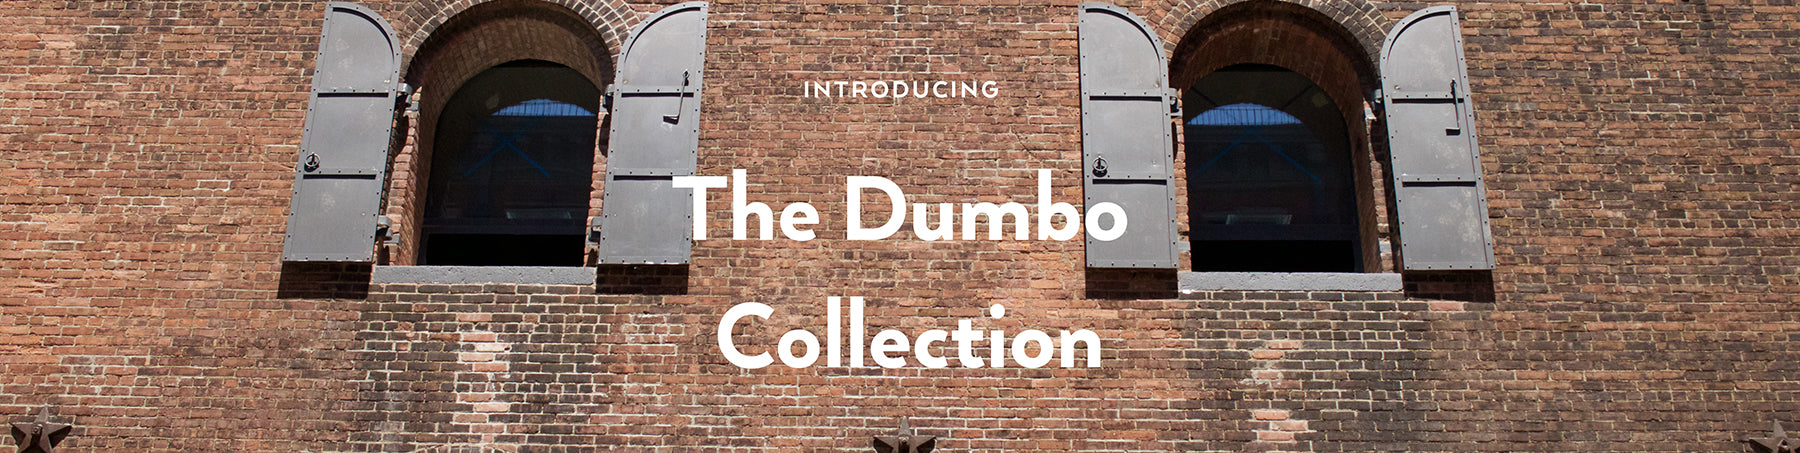 The Dumbo Collection